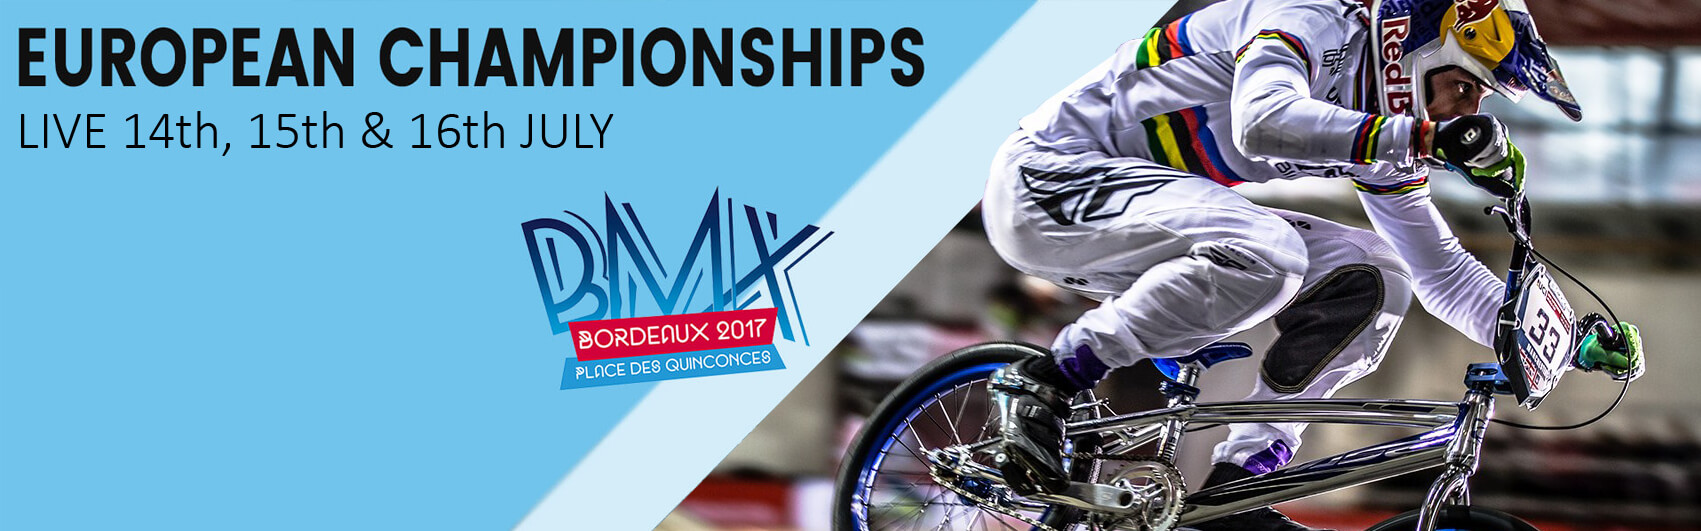 2017 European Championships France